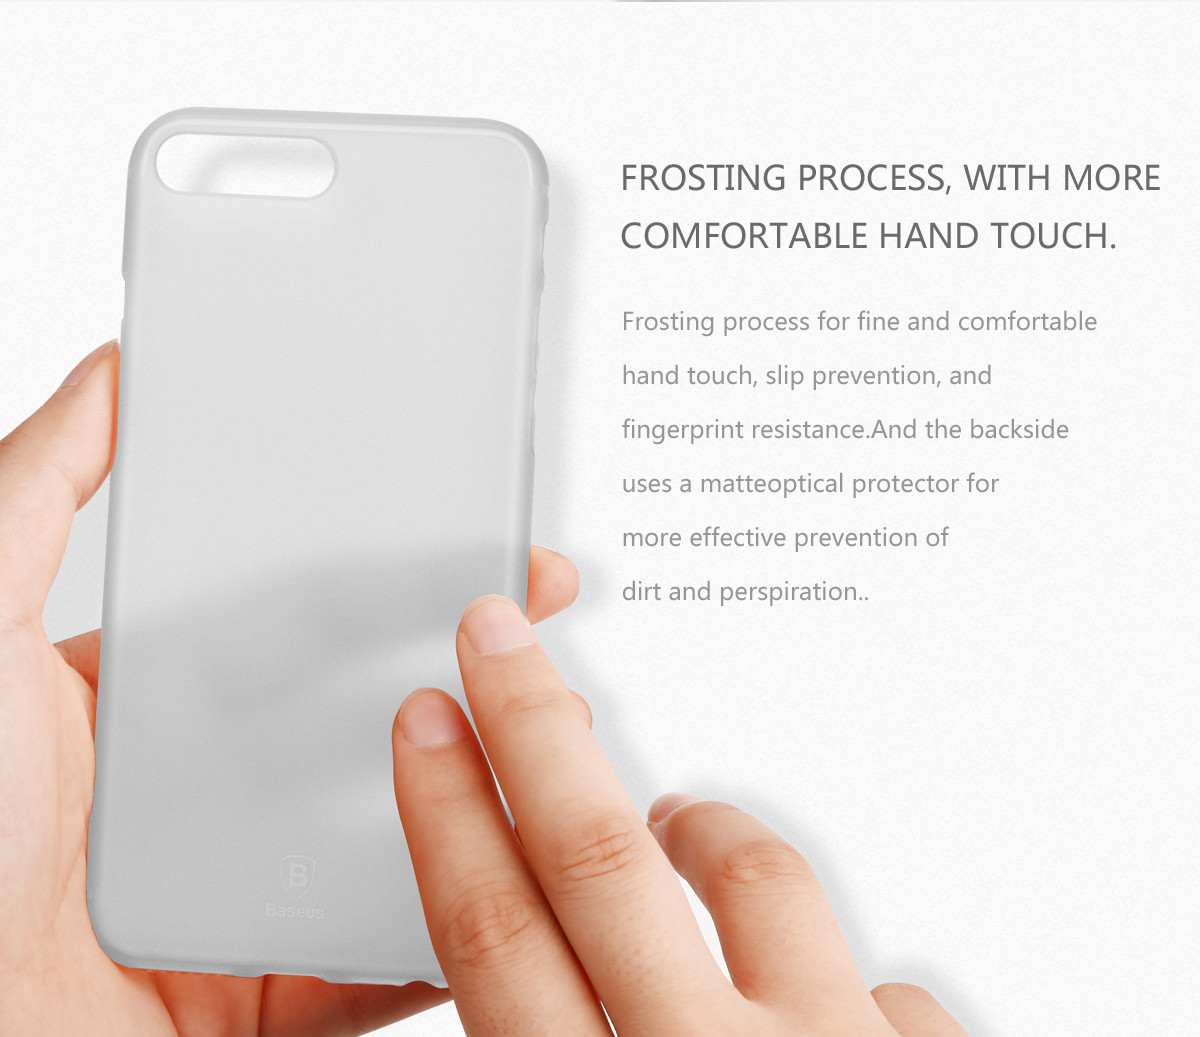 Baseus Slim Series PP Material 0.5mm Ultra Thin Phone Case Multi Protective Cover For iPhone 7 Plus/8 Plus